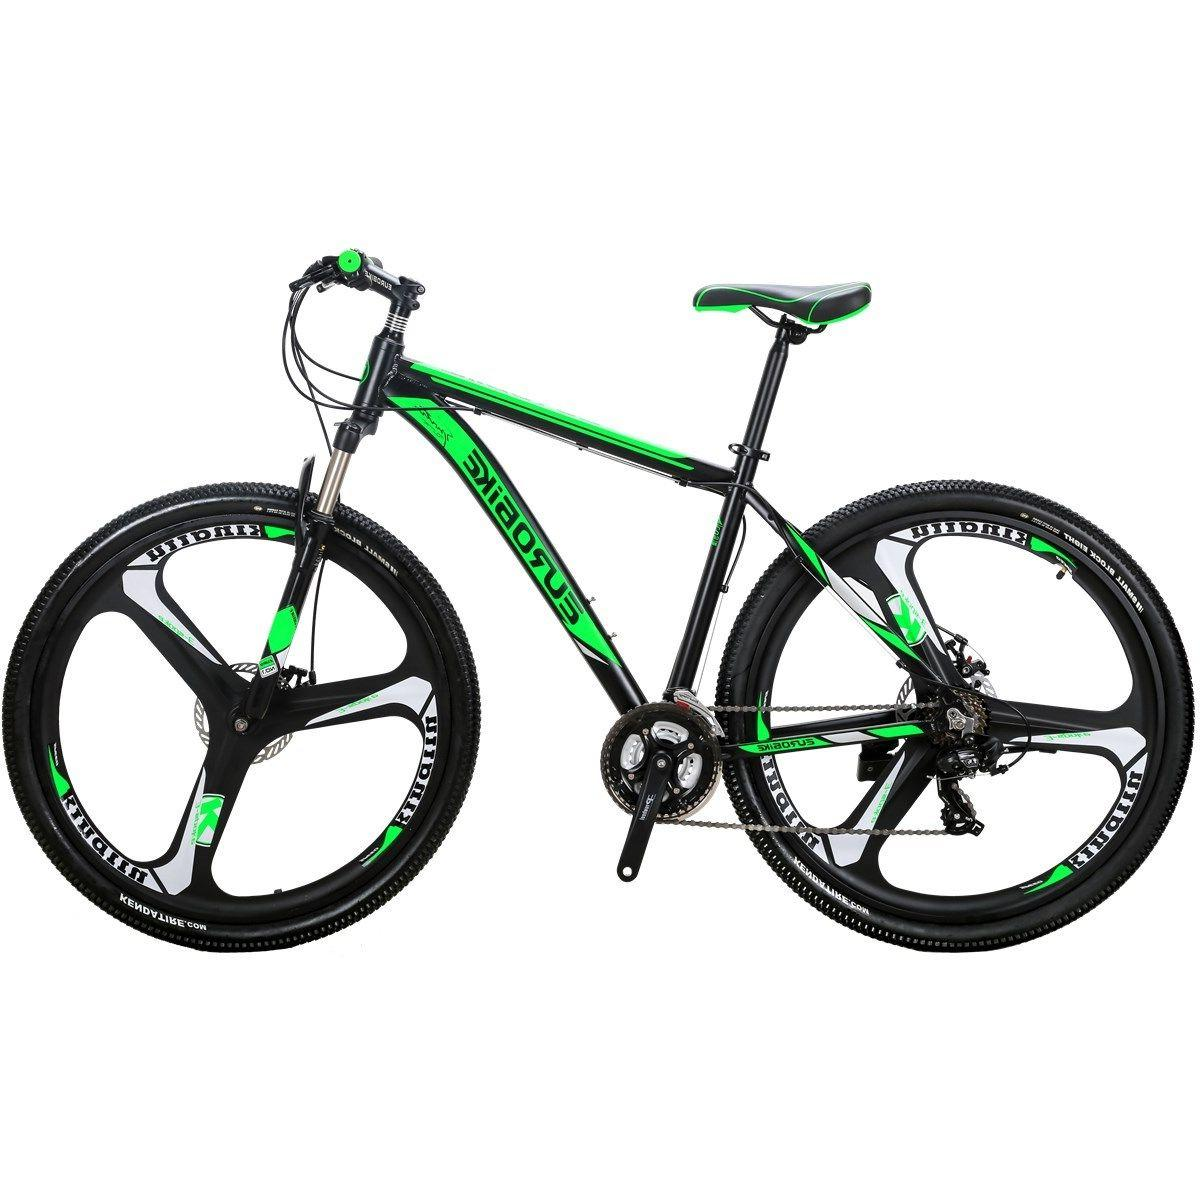 "Aluminium Mountain bike 29"" Shimano 21 Speed mag wheels mens"